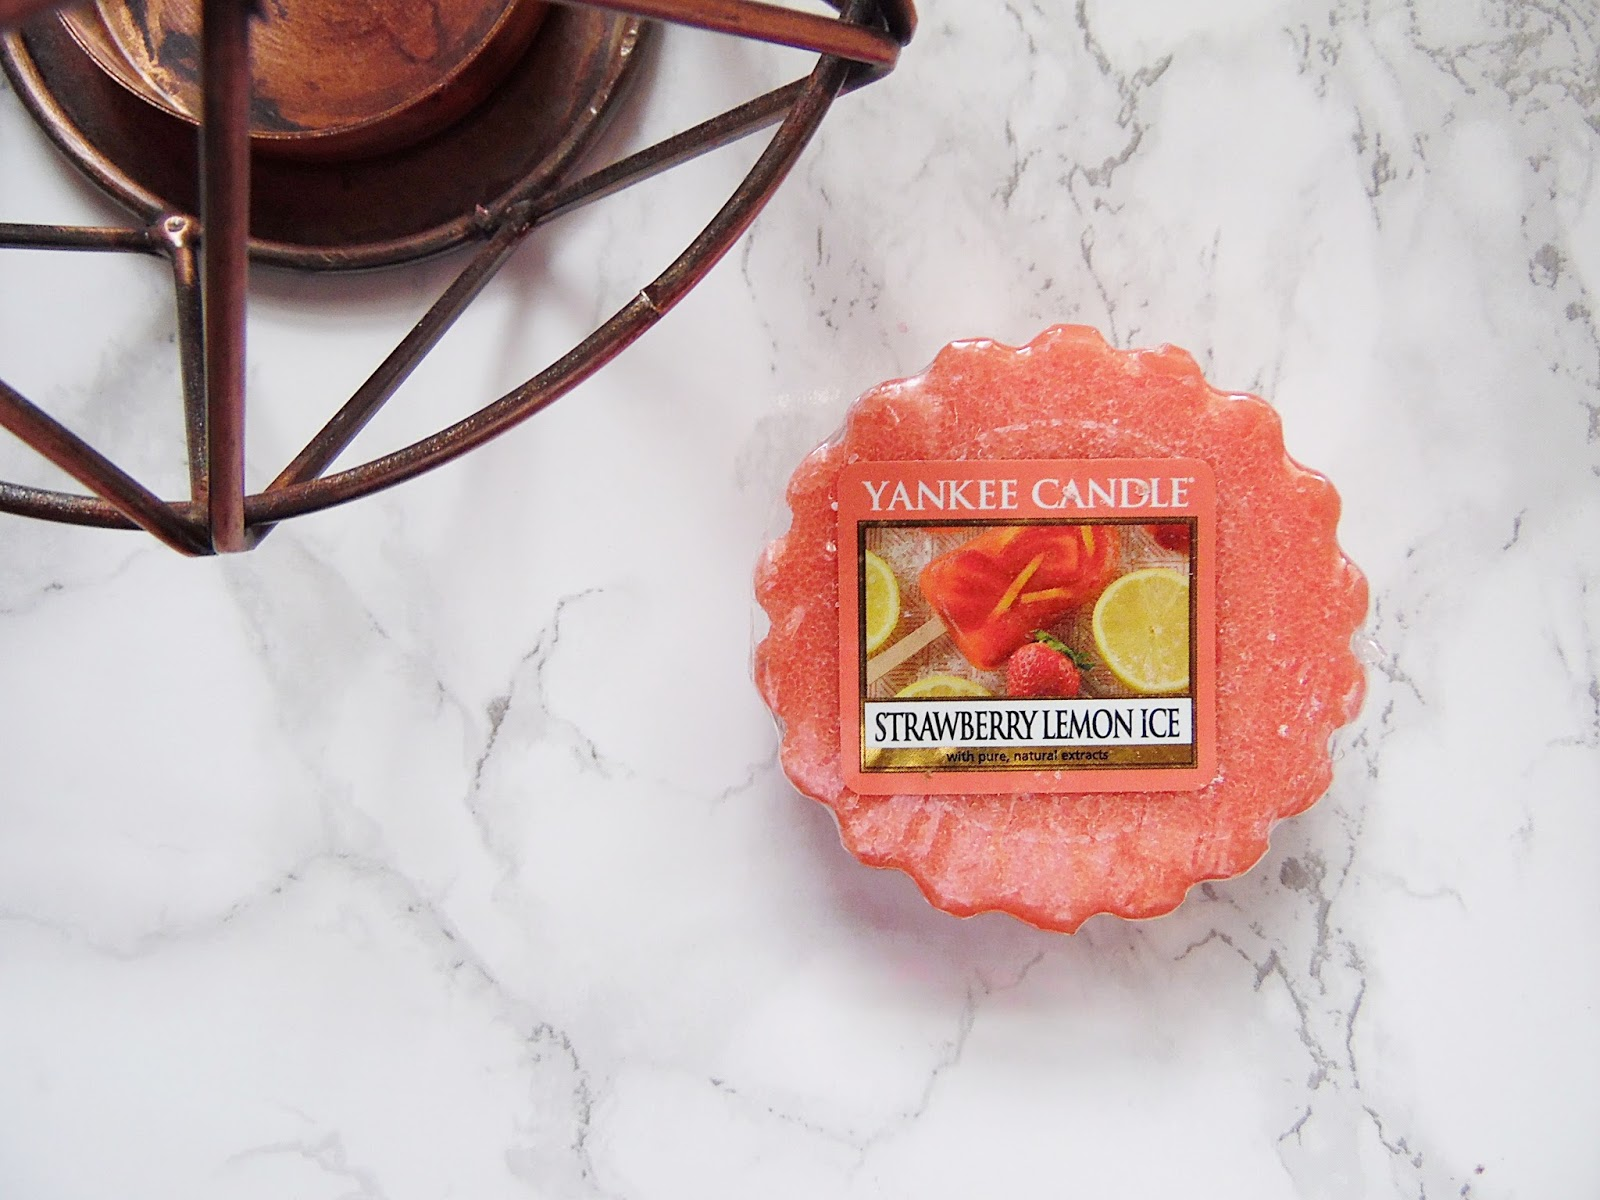 Yankee Candle Strawberry Lemon Ice